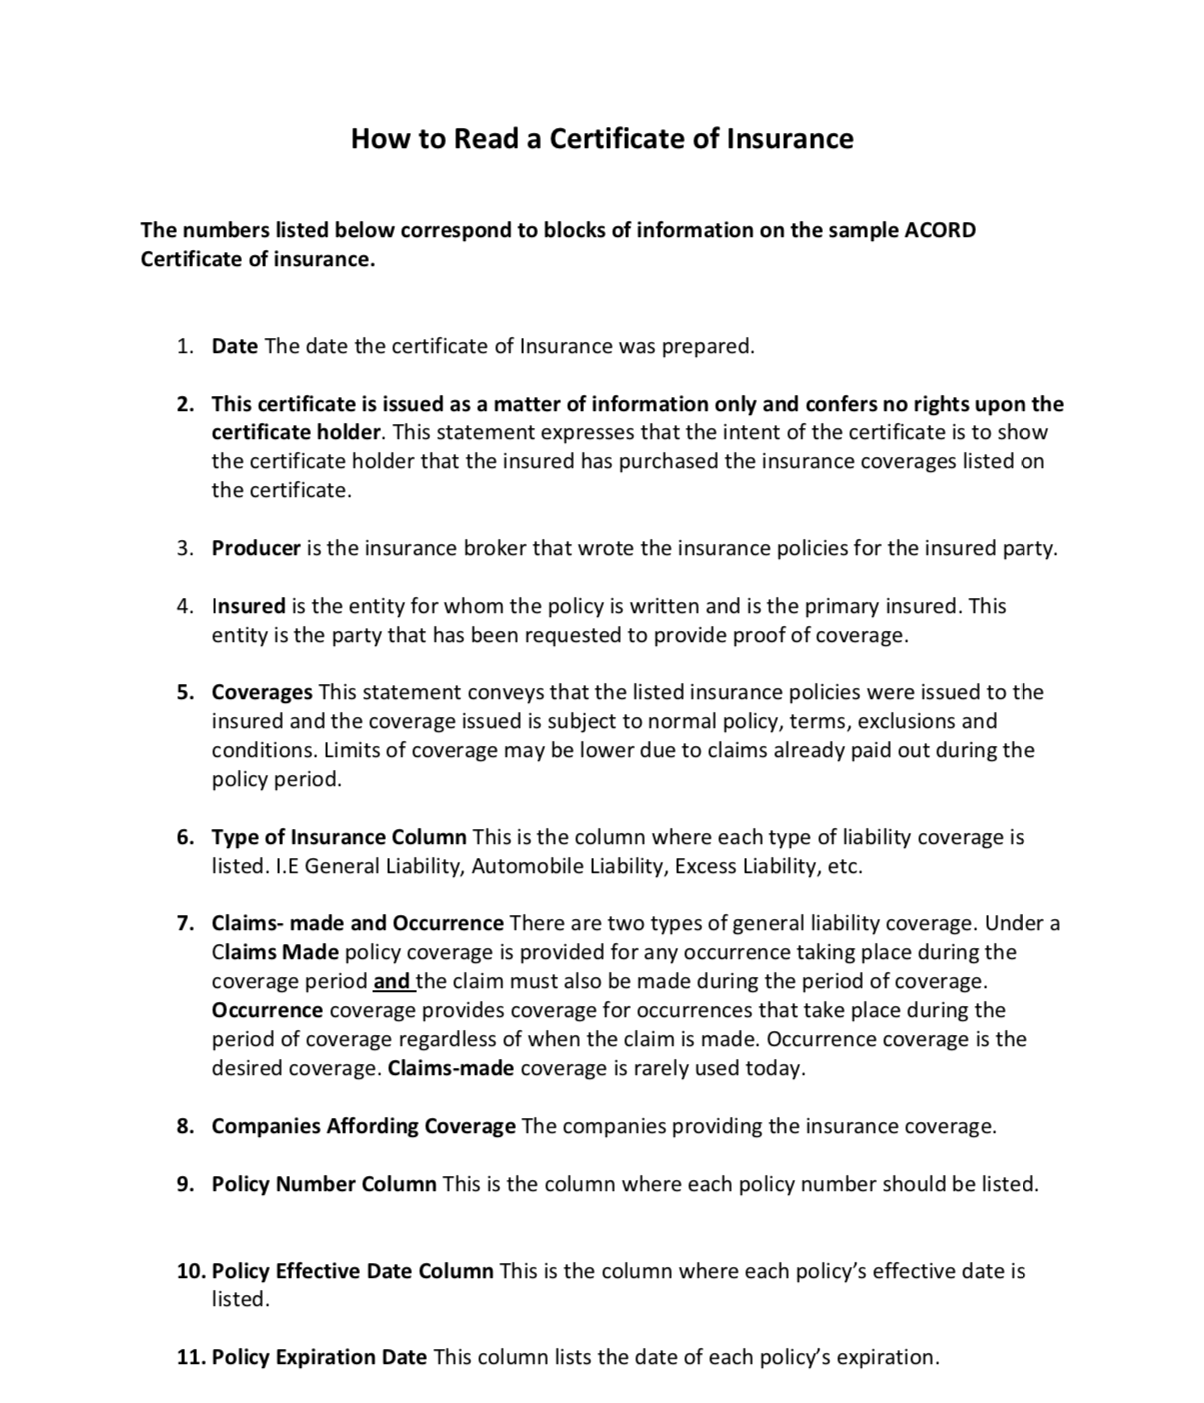 How To Read A Certificate Of Insurance